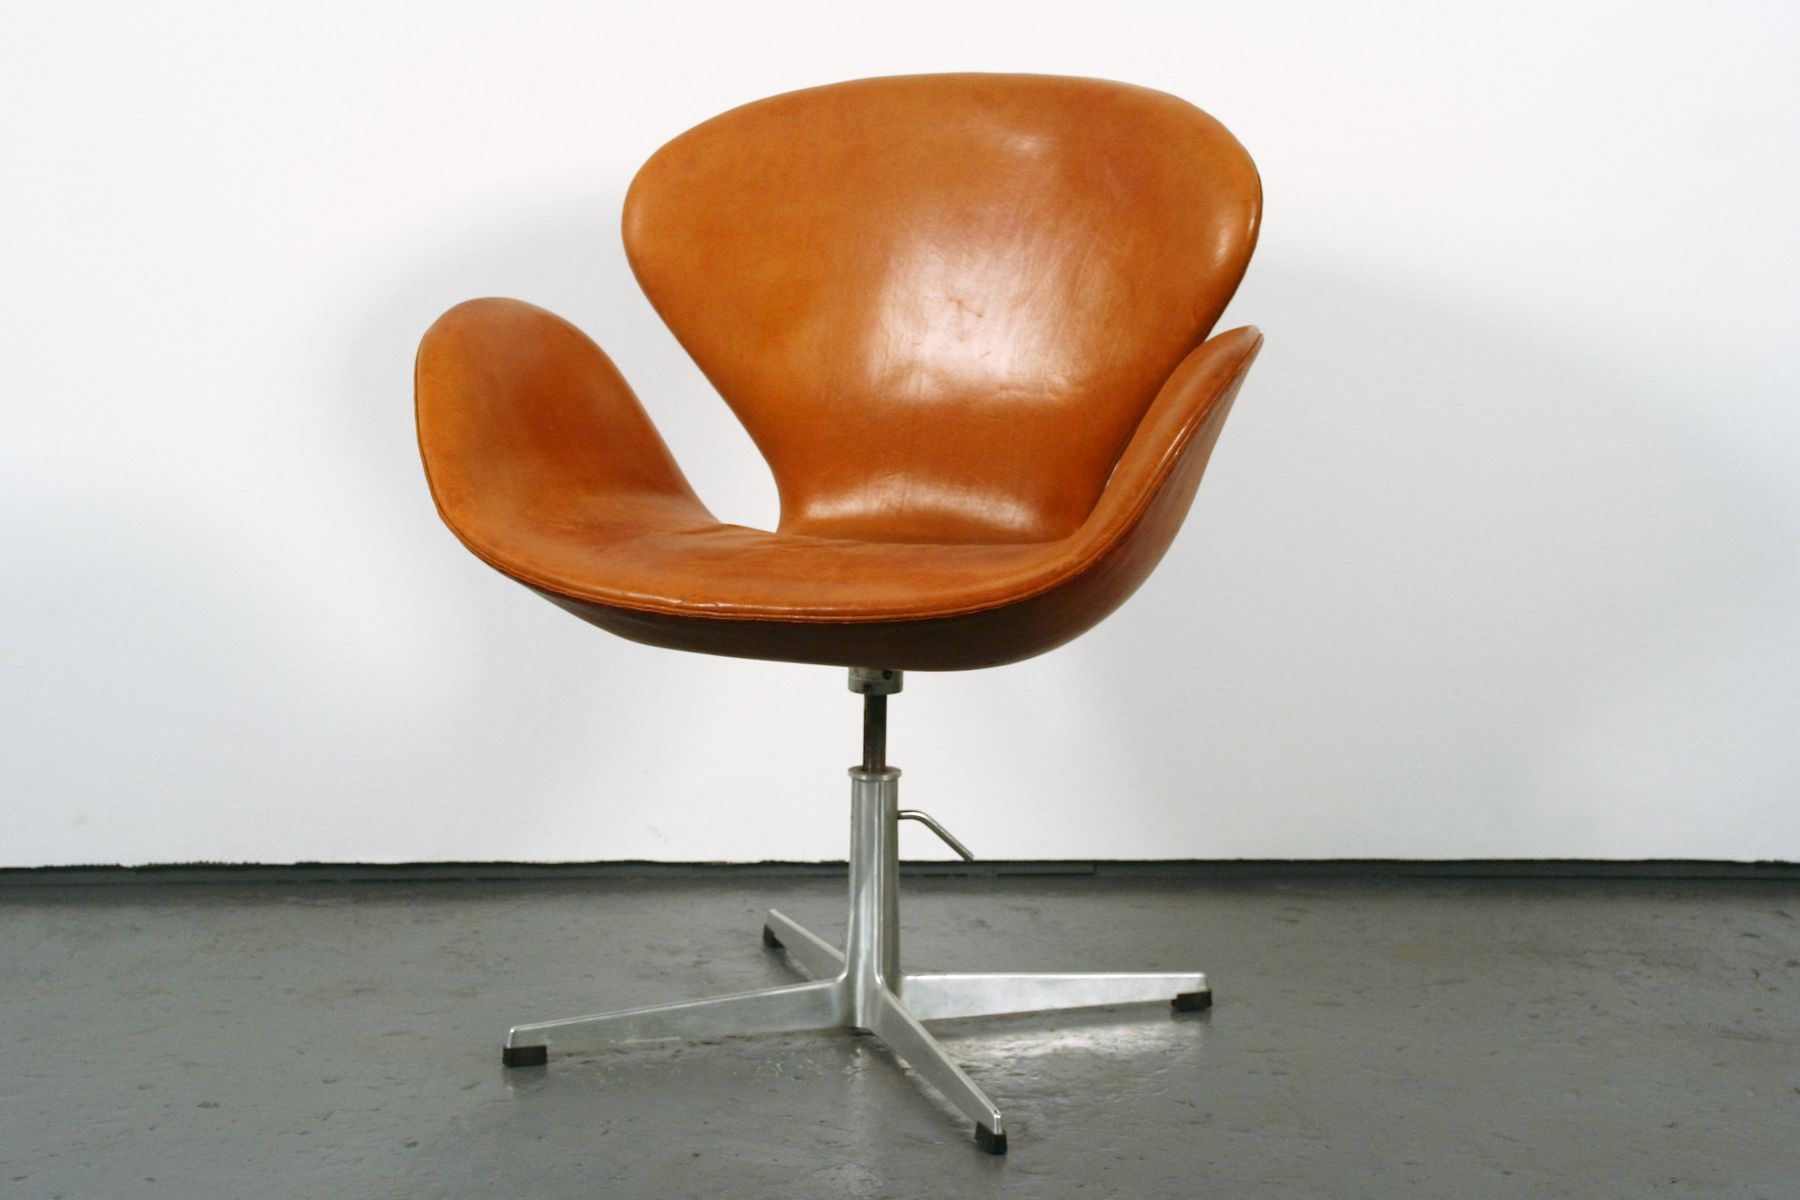 swan chair by arne jacobsen for fritz hansen 1964 for sale at pamono. Black Bedroom Furniture Sets. Home Design Ideas